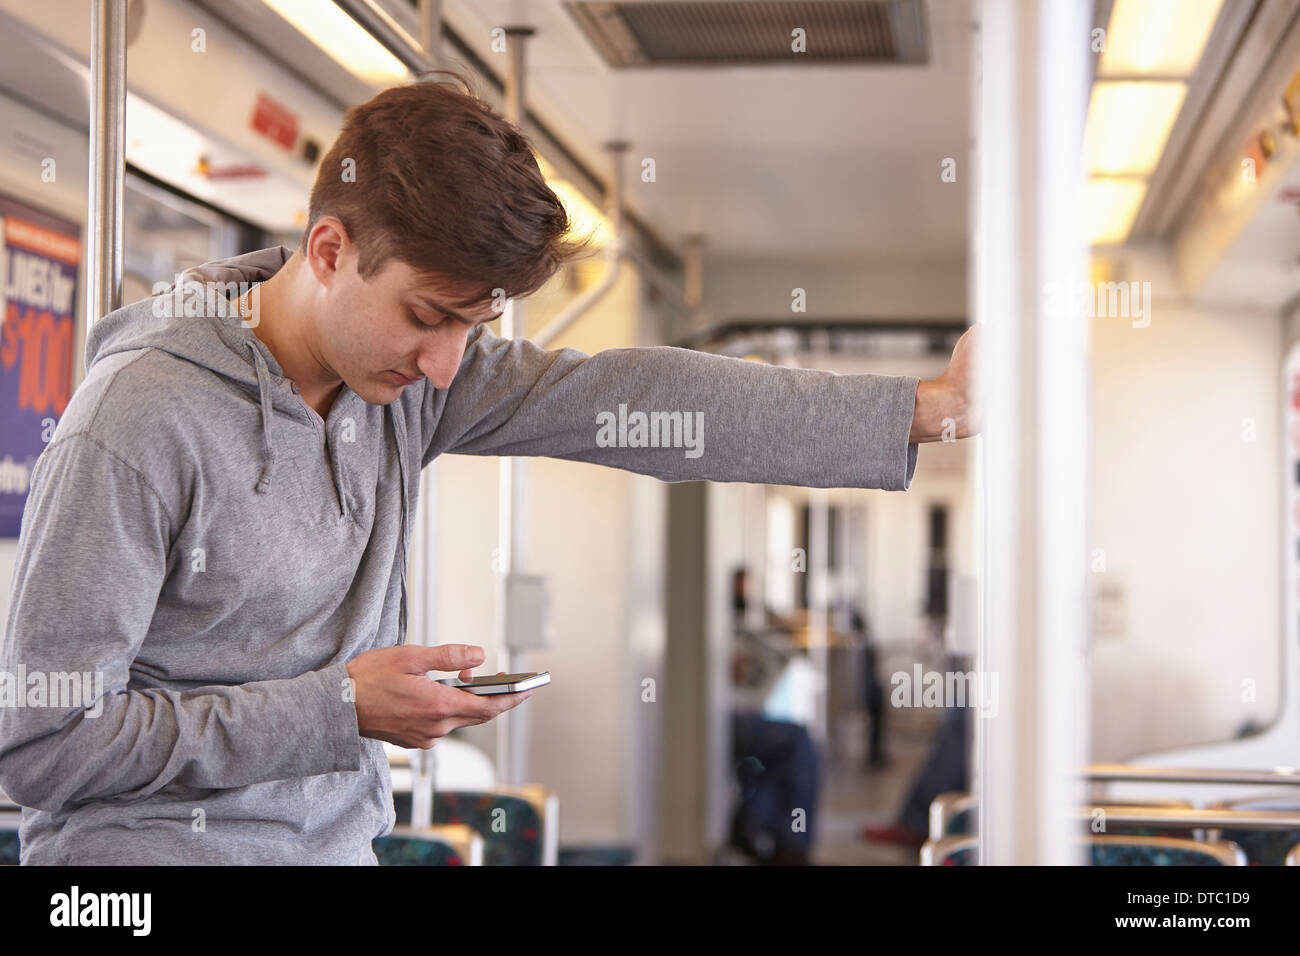 Mid adult man using cellphone on subway train - Stock Image